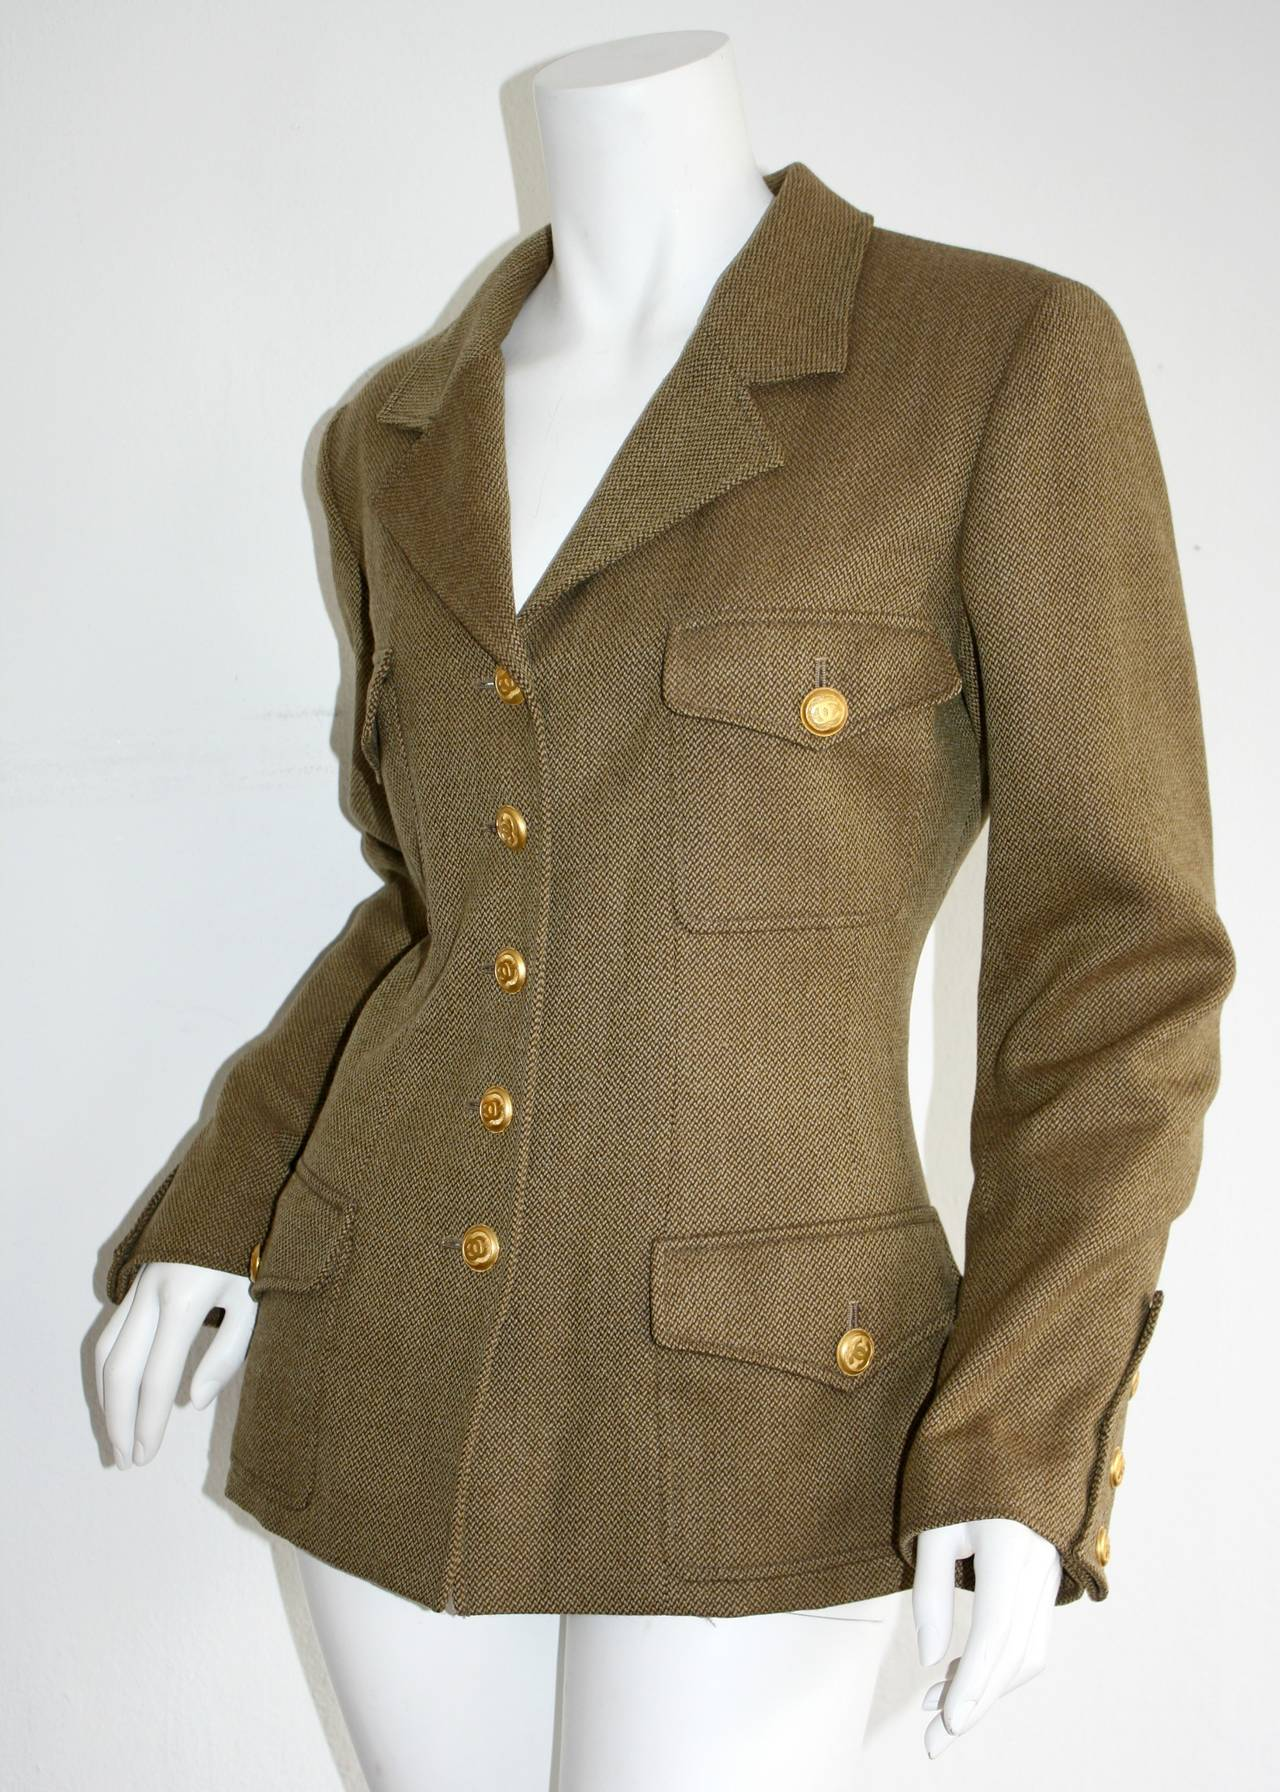 Women's Vintage Chanel 96A Military Sz 42 Jacket Gold Logo Buttons Brand New w/ Tags For Sale